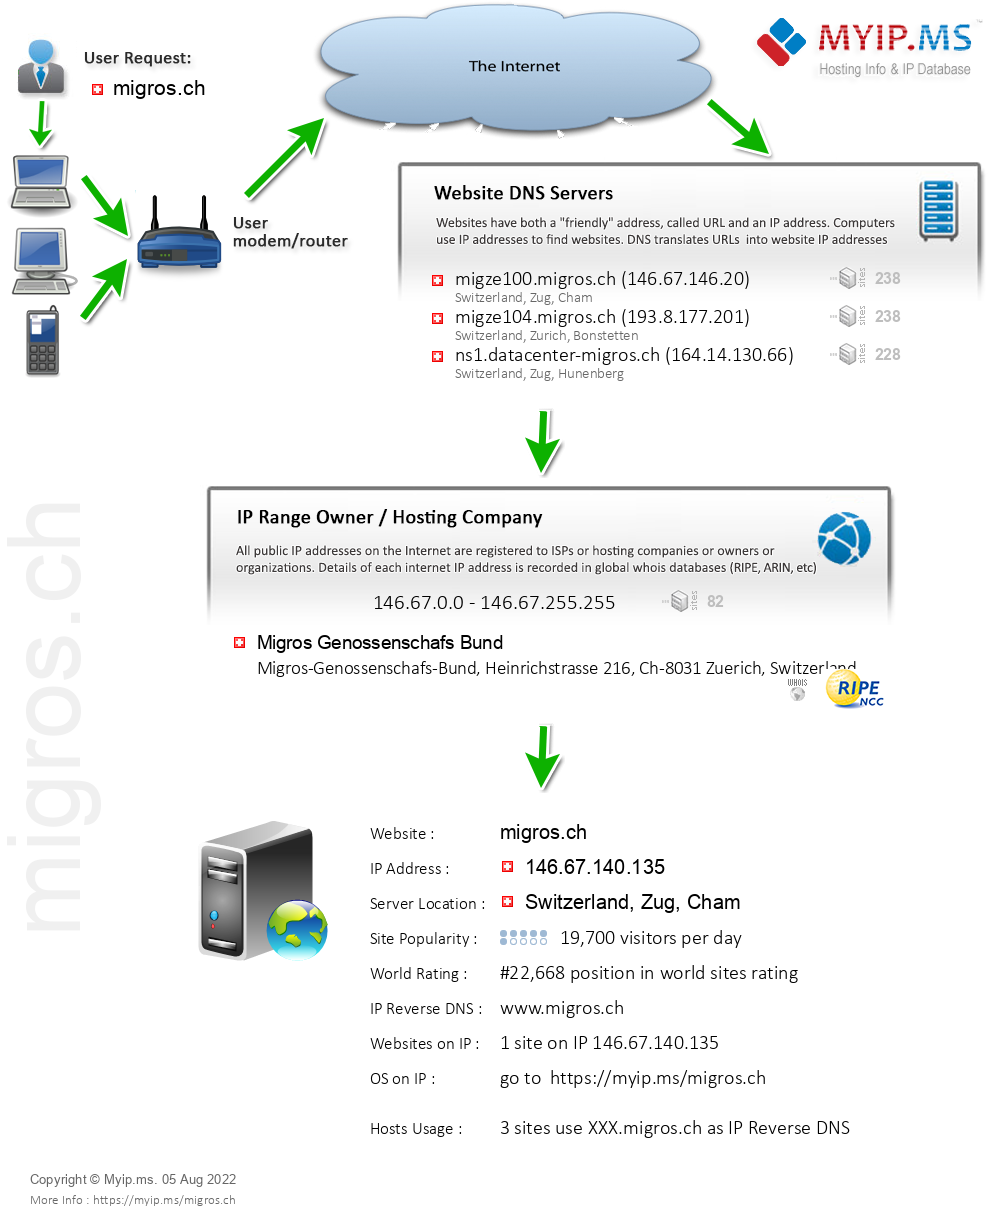 Migros.ch - Website Hosting Visual IP Diagram